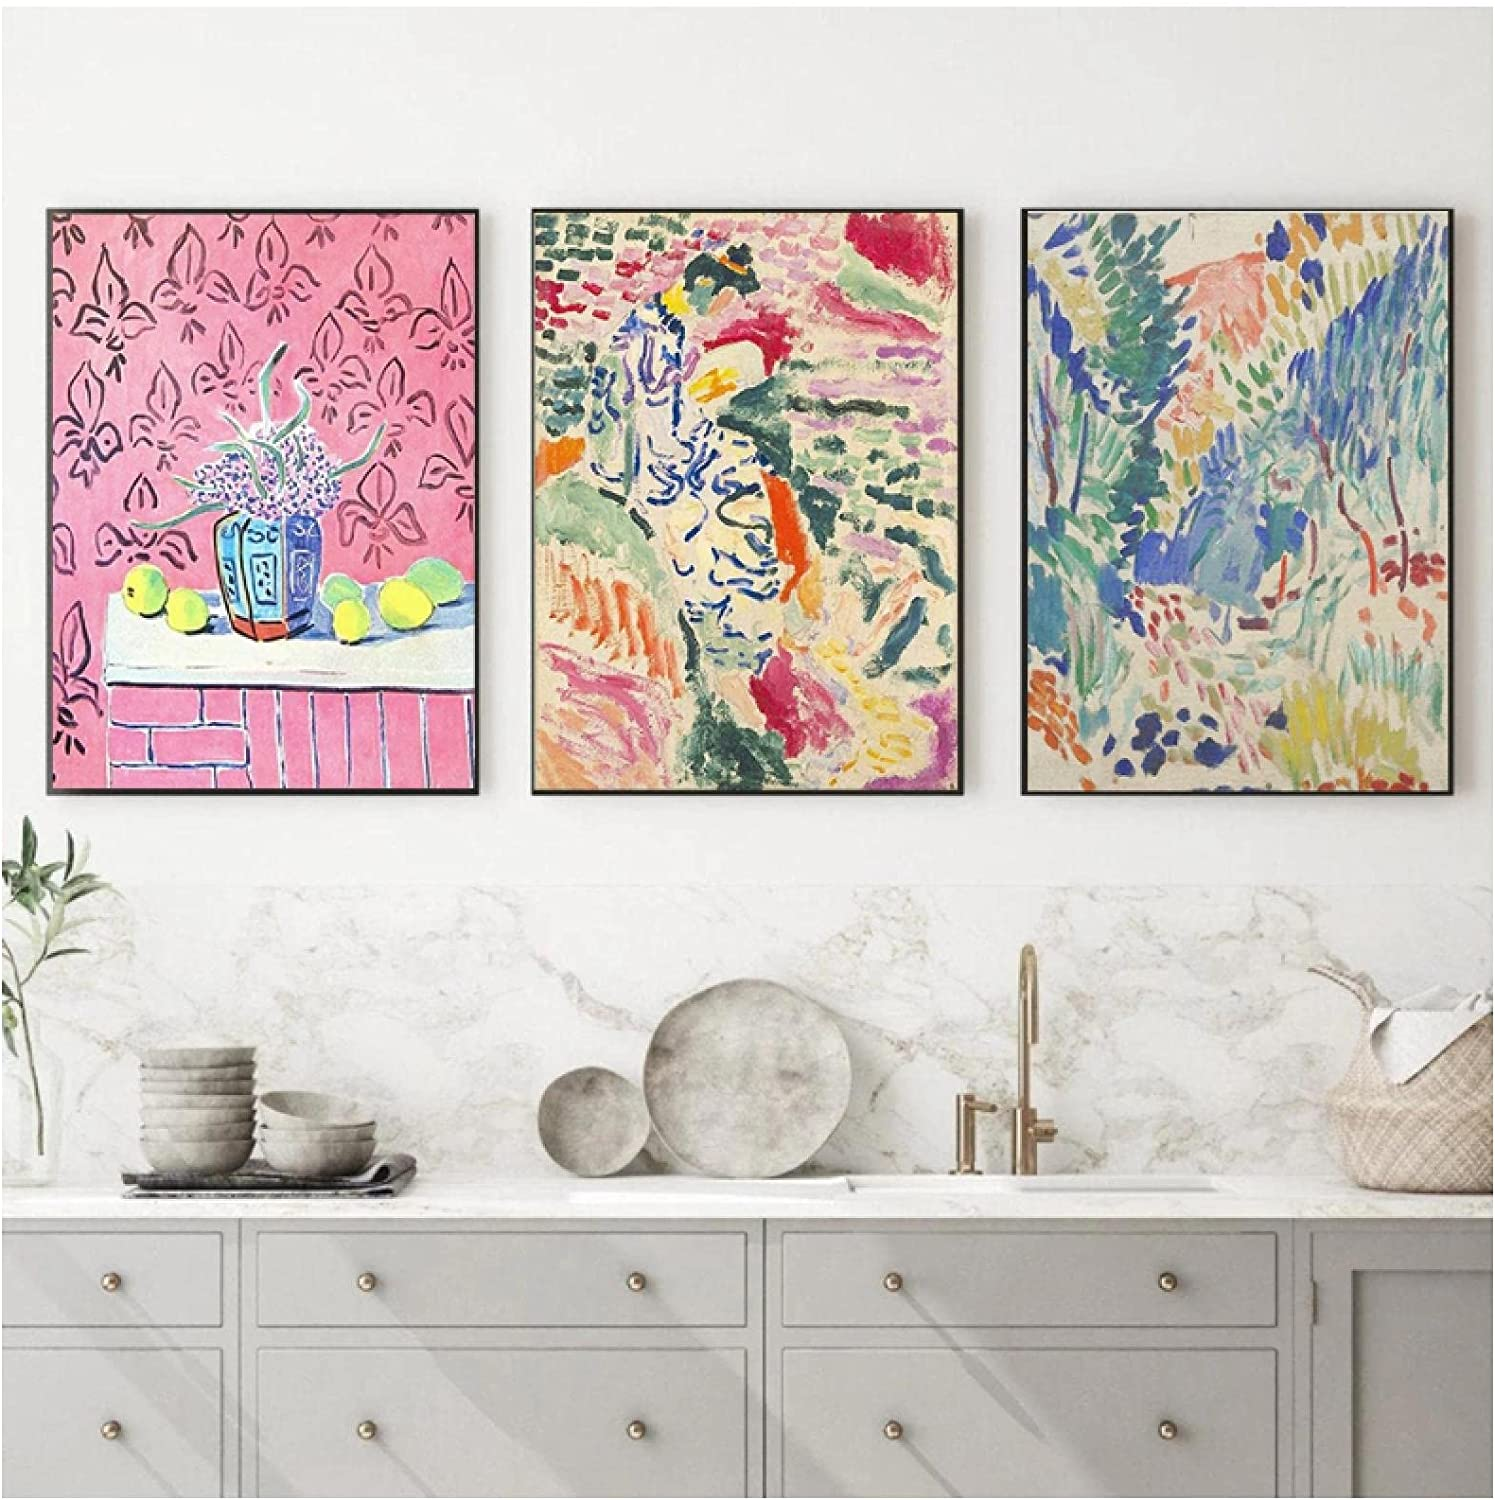 Over item handling ☆ Wall Art Painting Abstract Matisse Prints And Retro Cre Special Campaign Posters